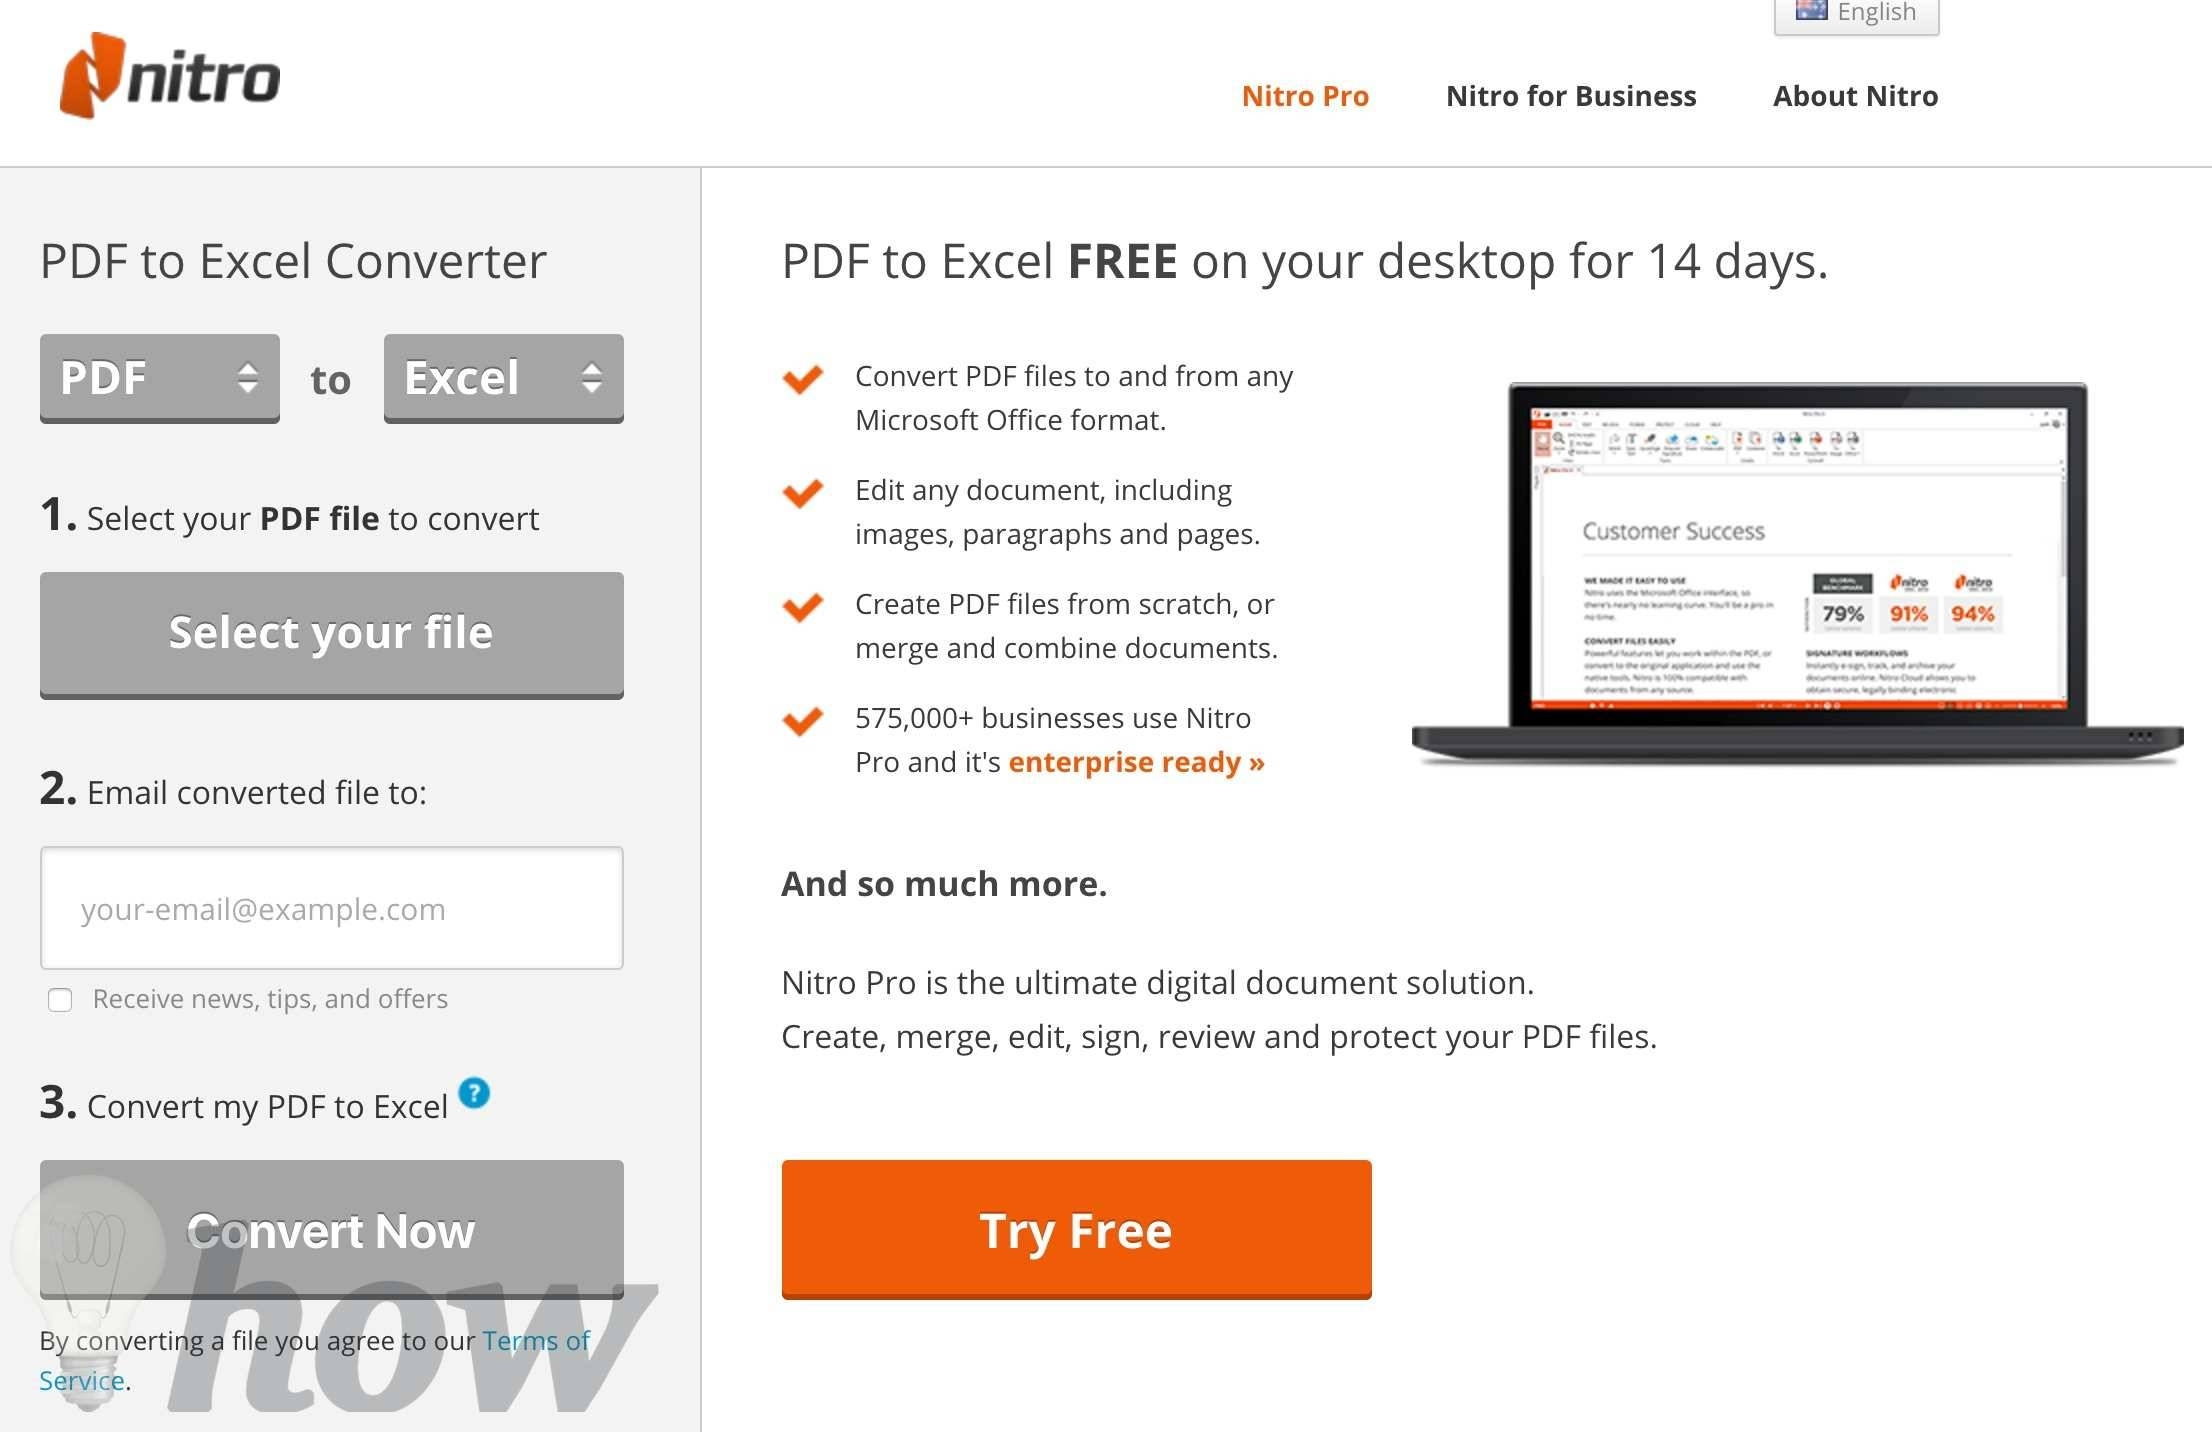 how can i convert a pdf to excel